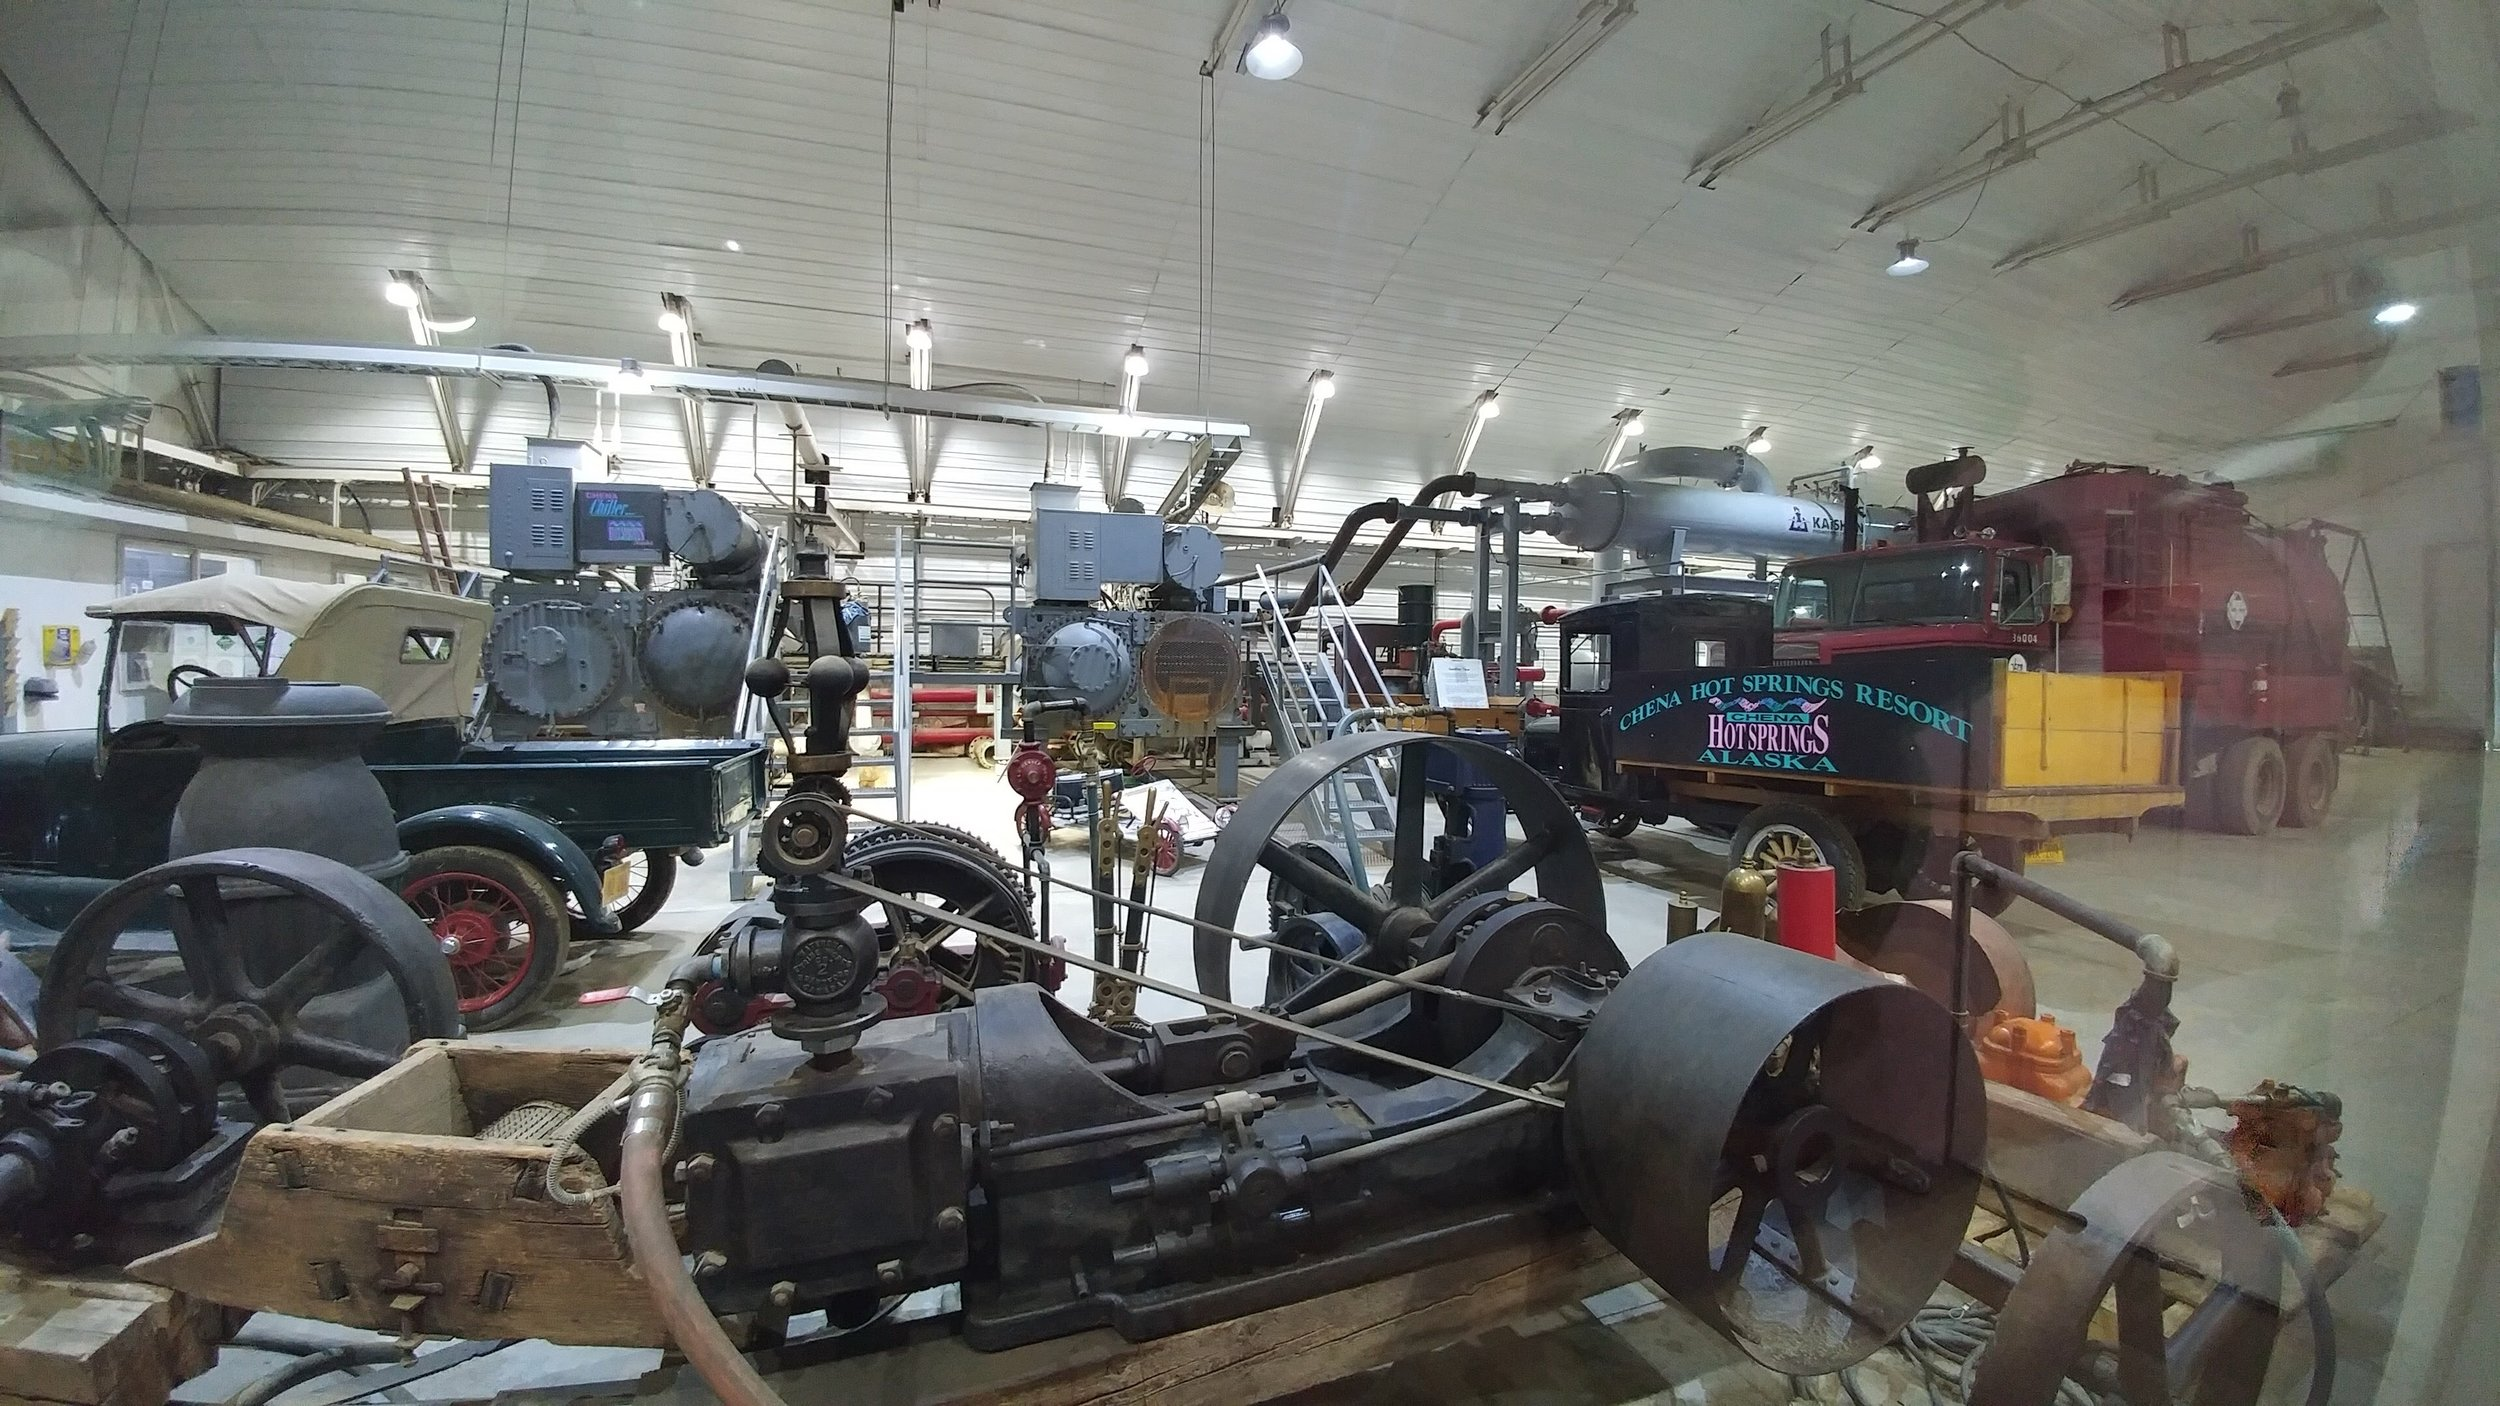 The power plant at Chena Hot Springs along with an assortment of older machinery. Three Organic Rankine Cycle (ORC) engines are installed, producing approx. 400kWh.